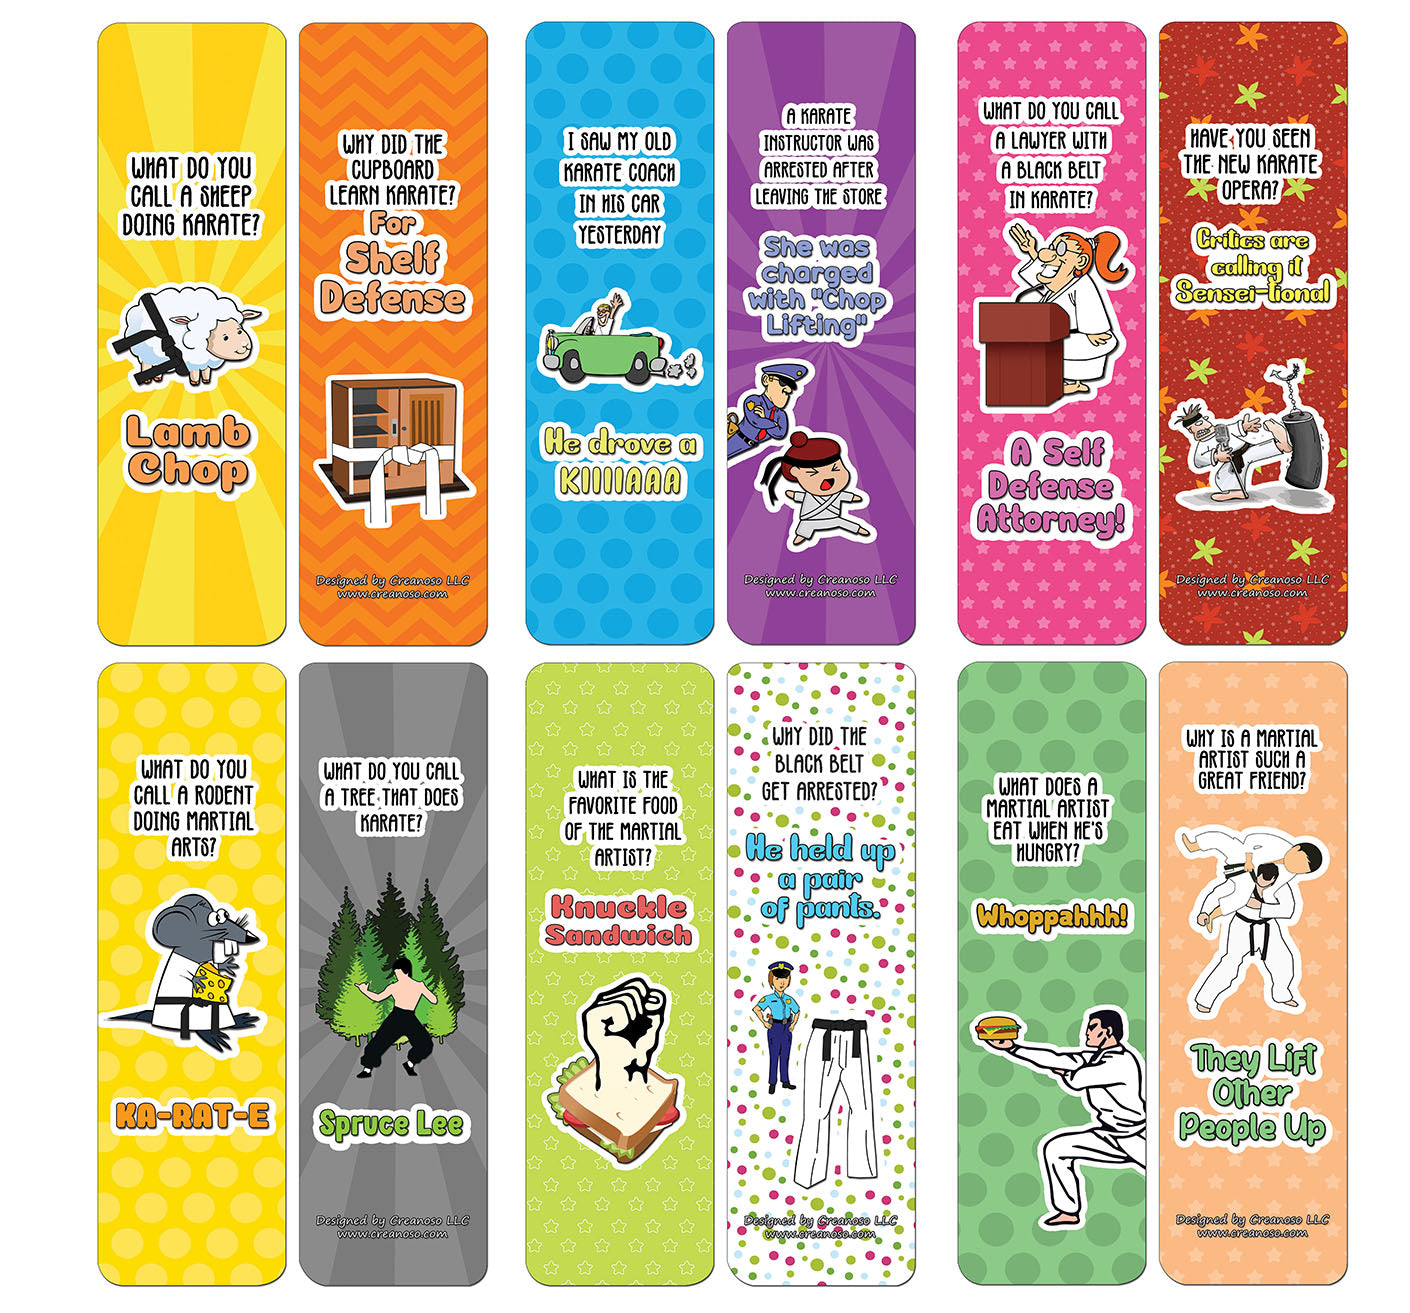 Creanoso Funny Clean Jokes Bookmarks -  Karate Jokes - Awesome Stocking Stuffers